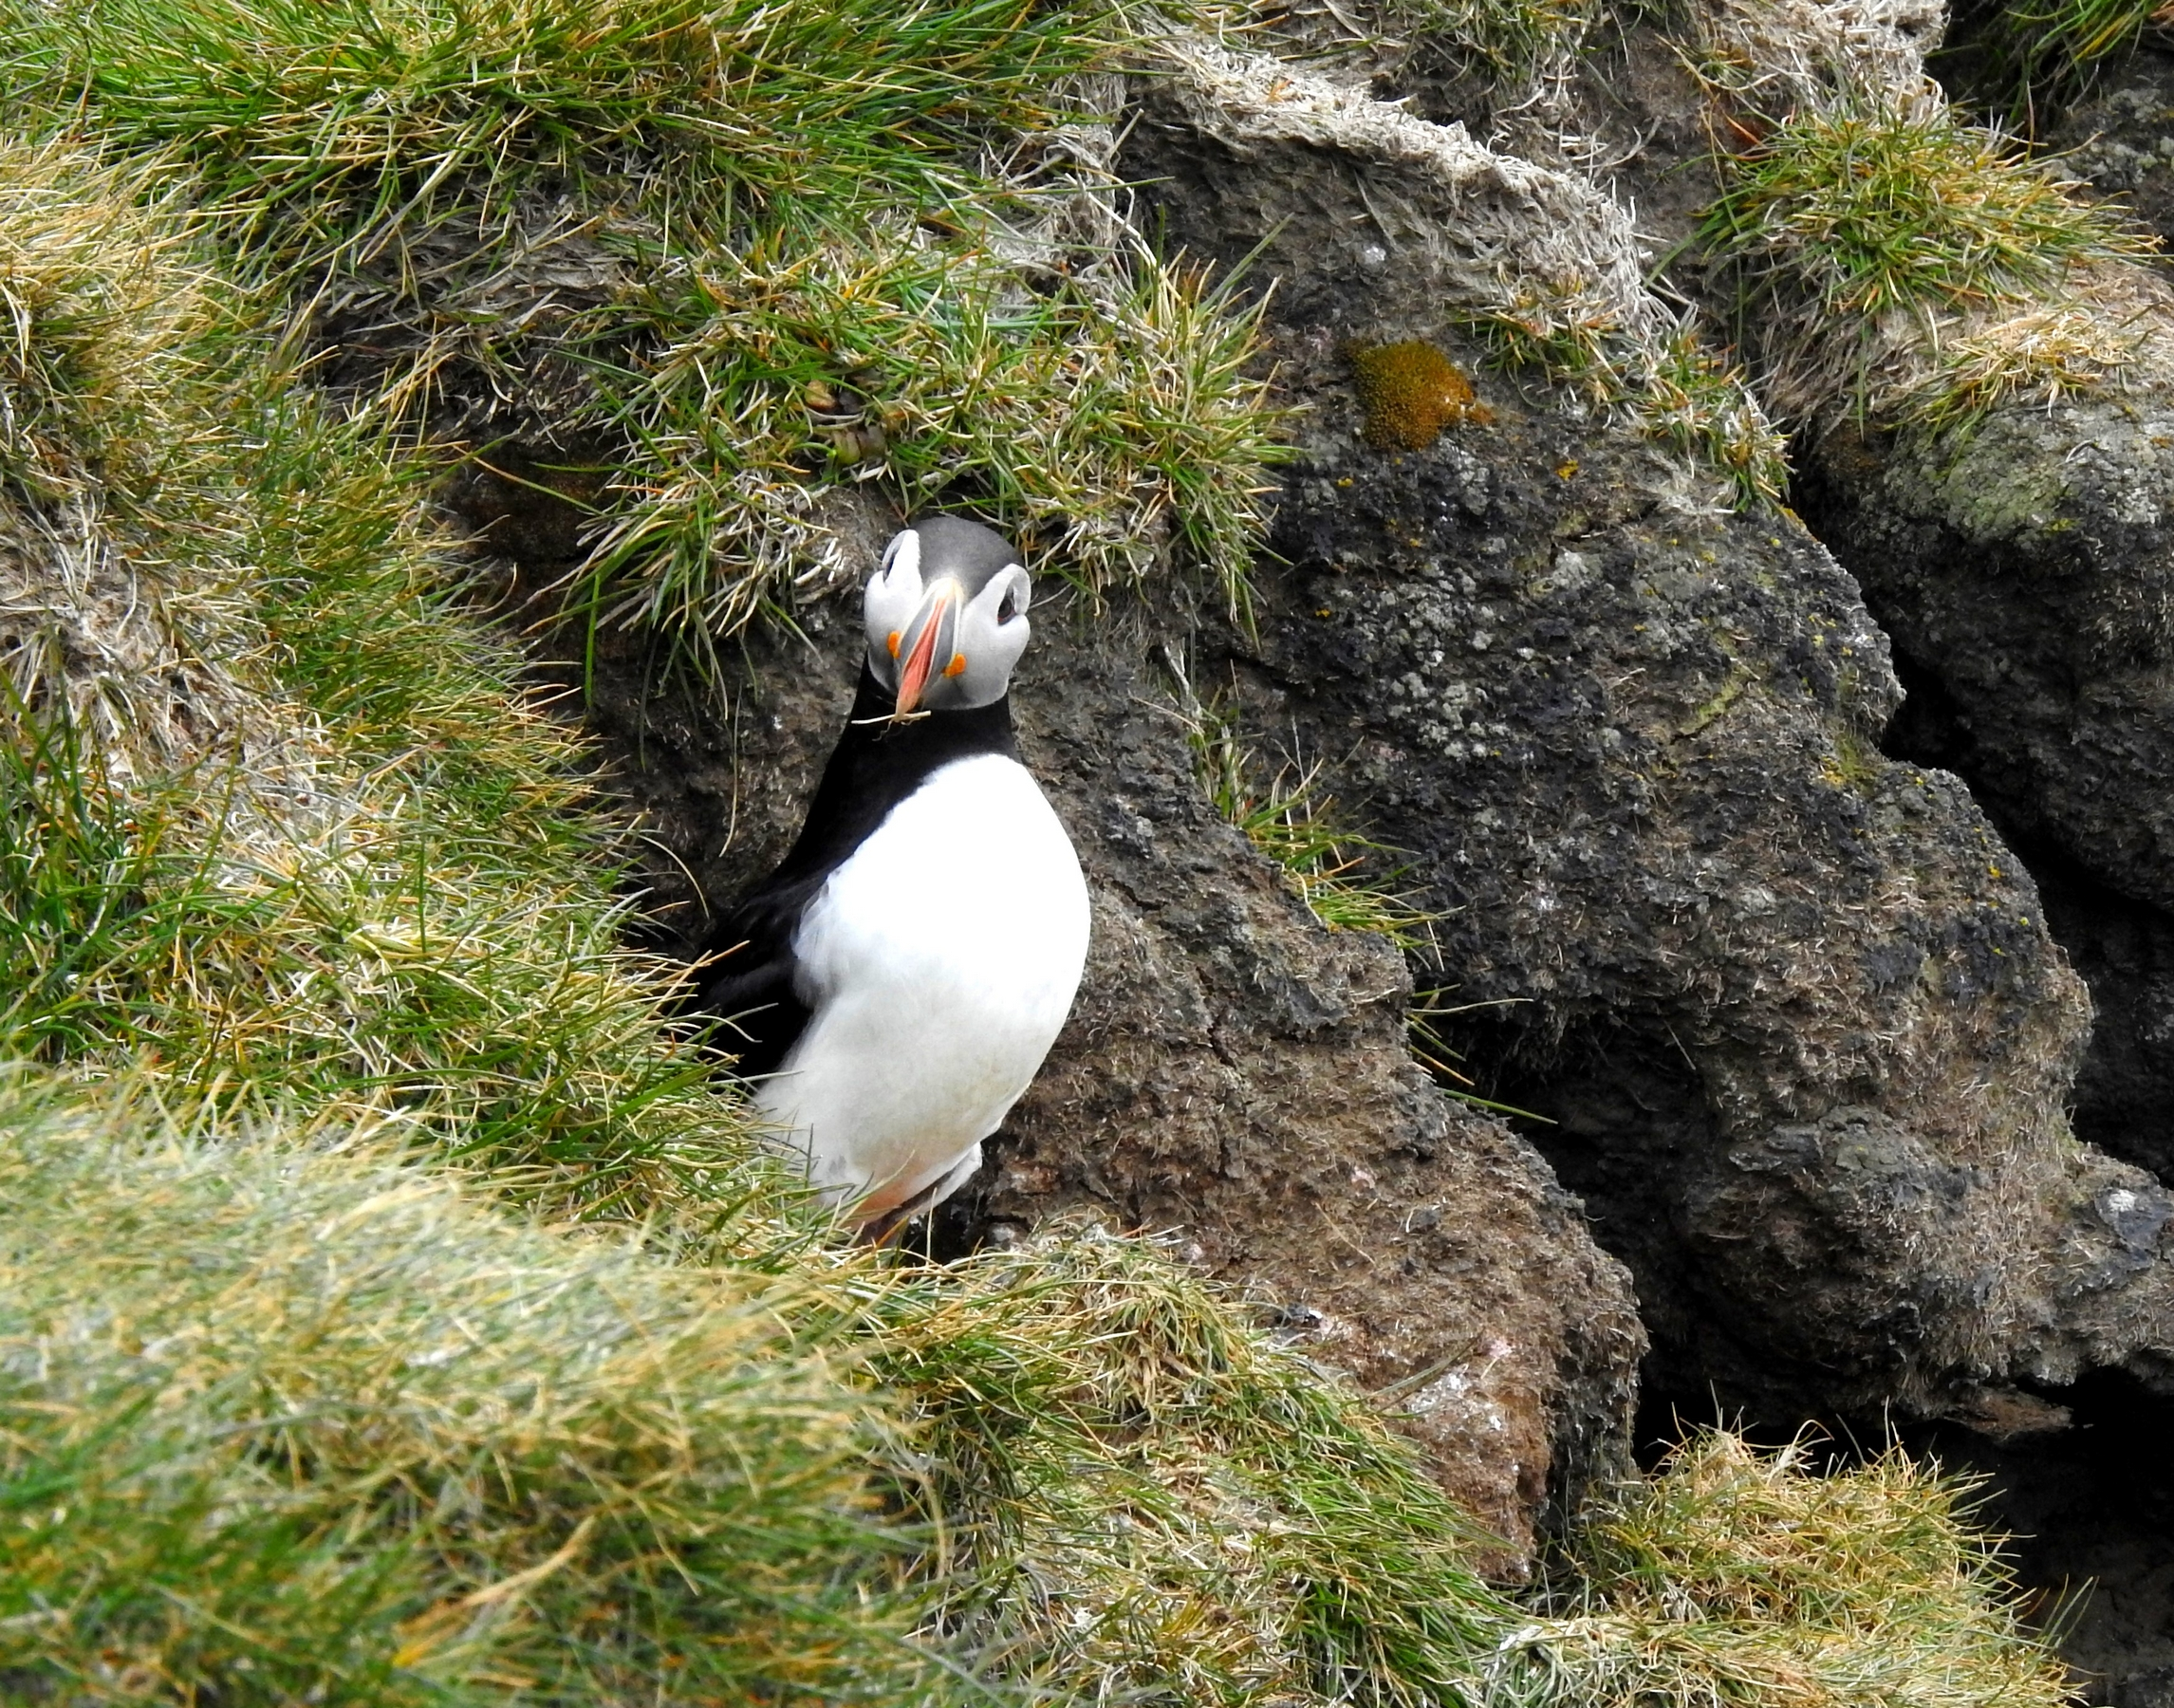 puffin pops out to see what's happening